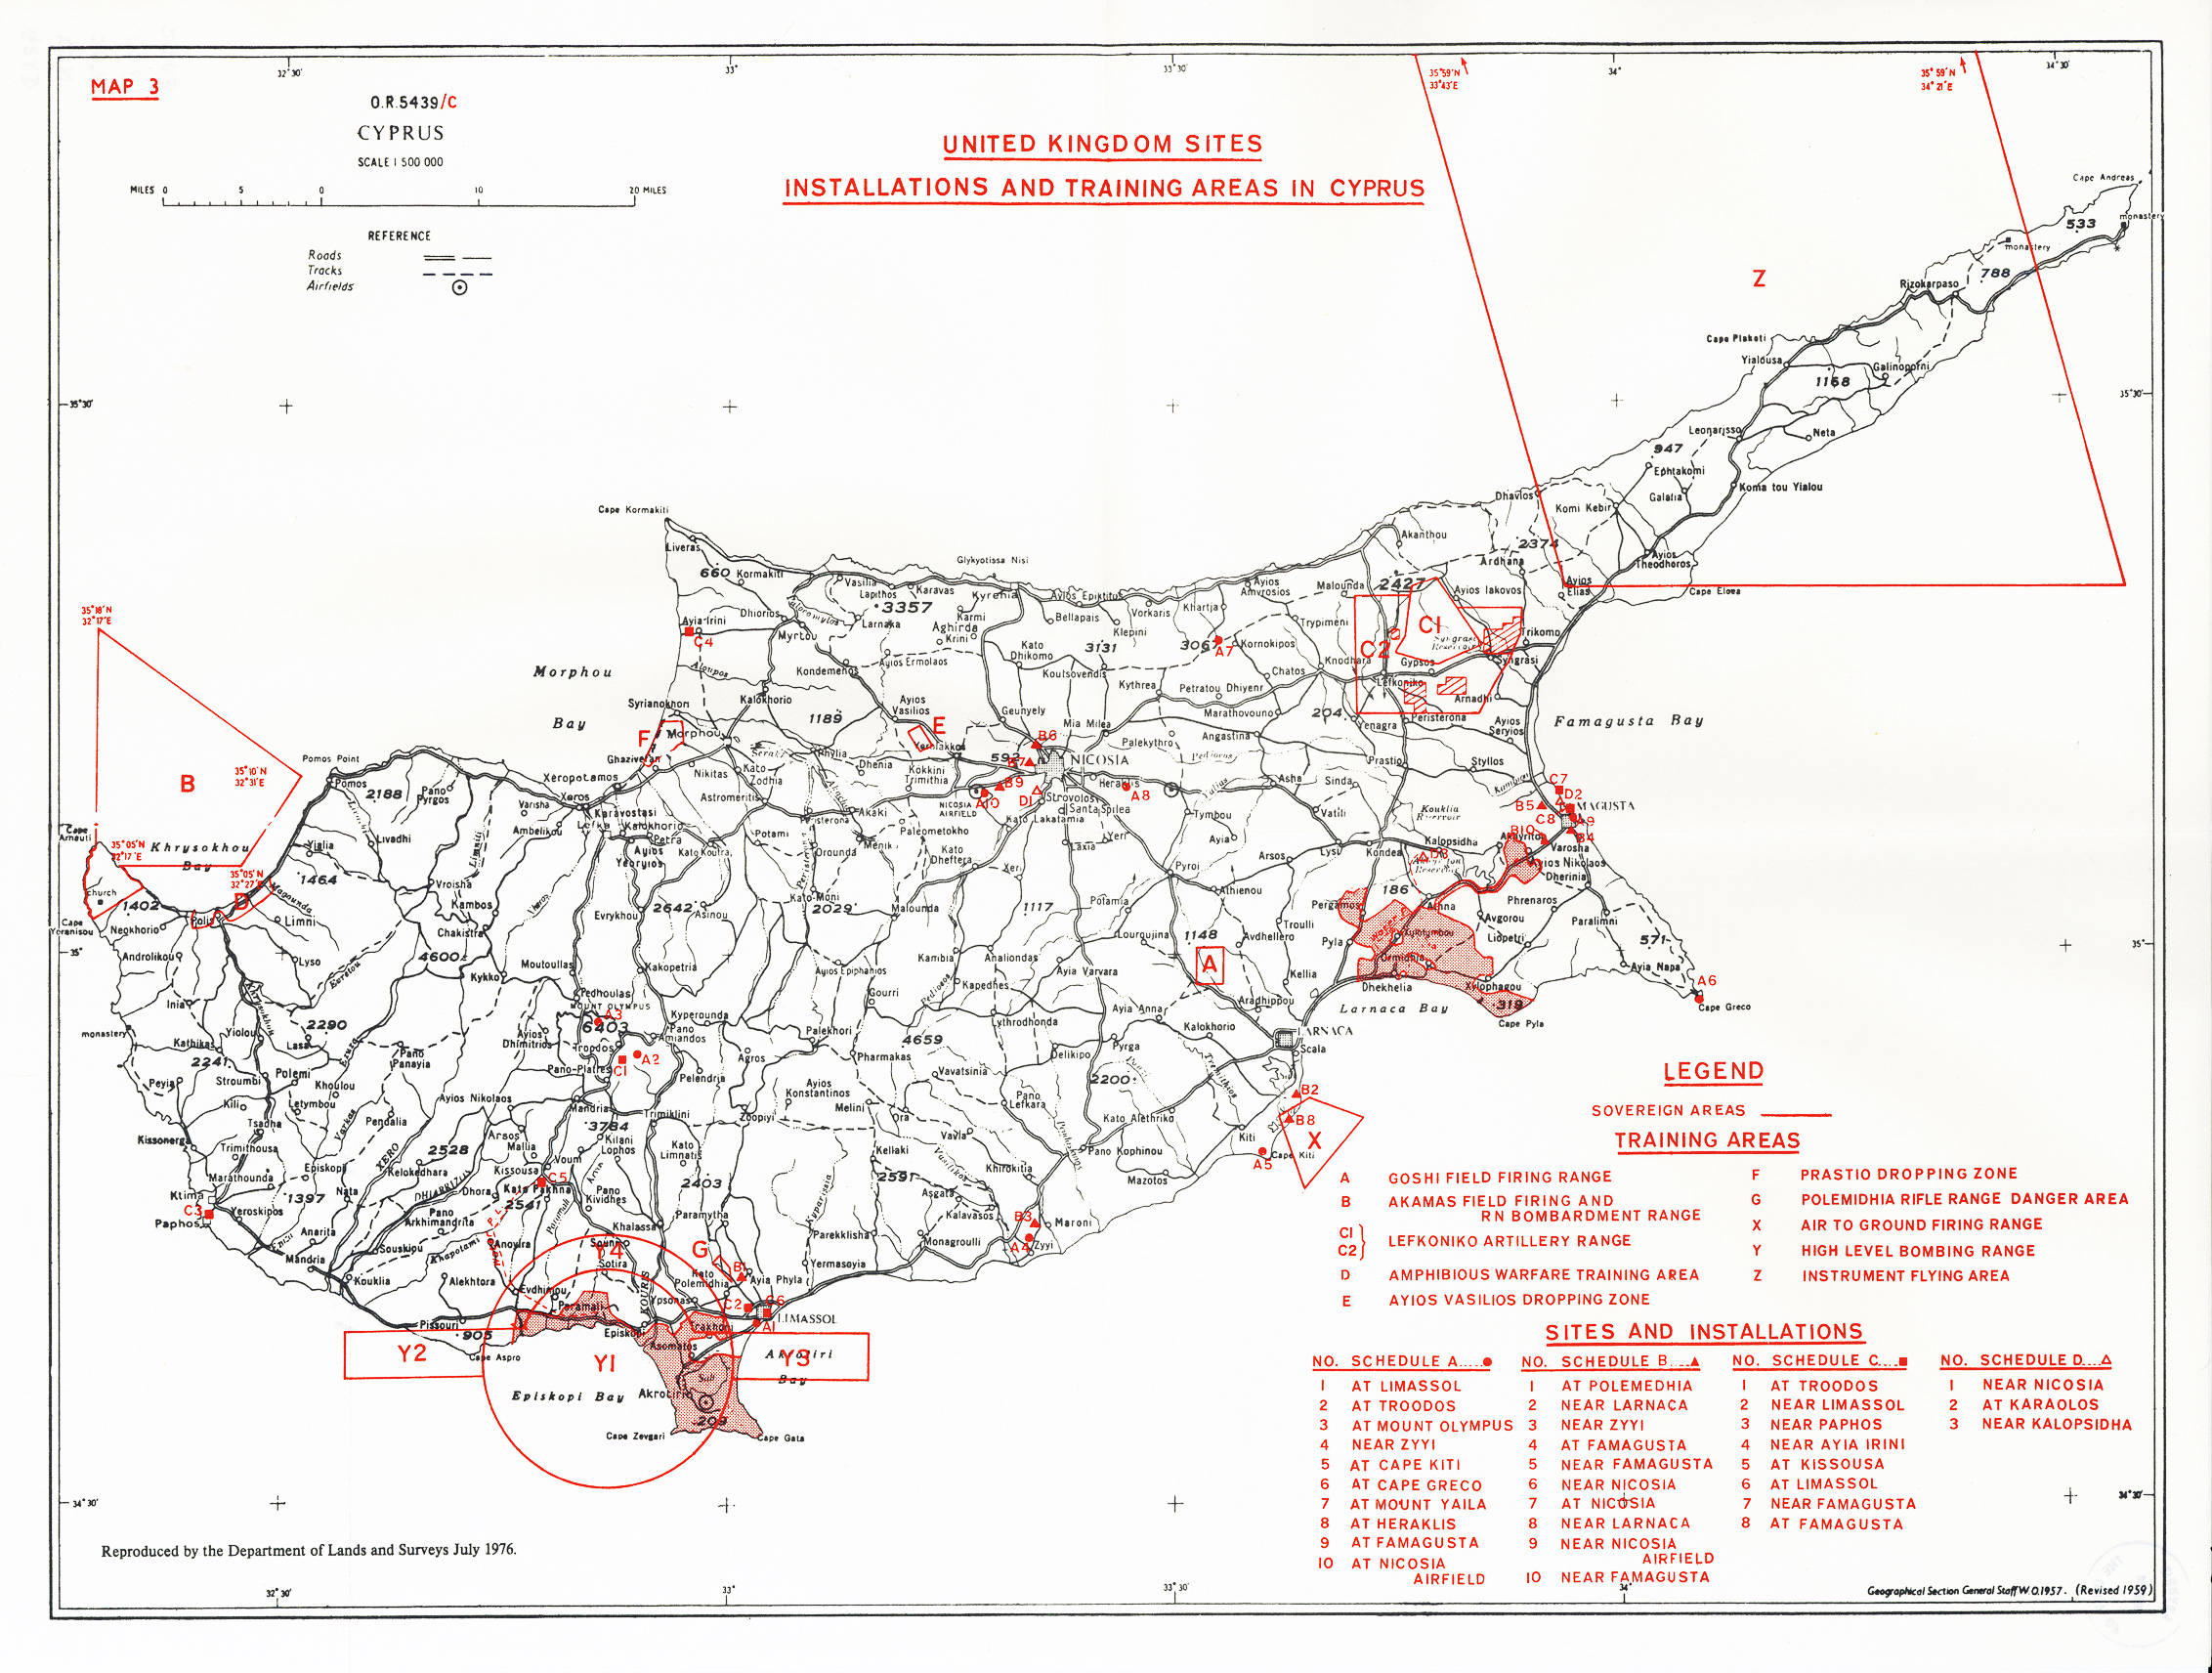 The British Withdrawal from Cyprus